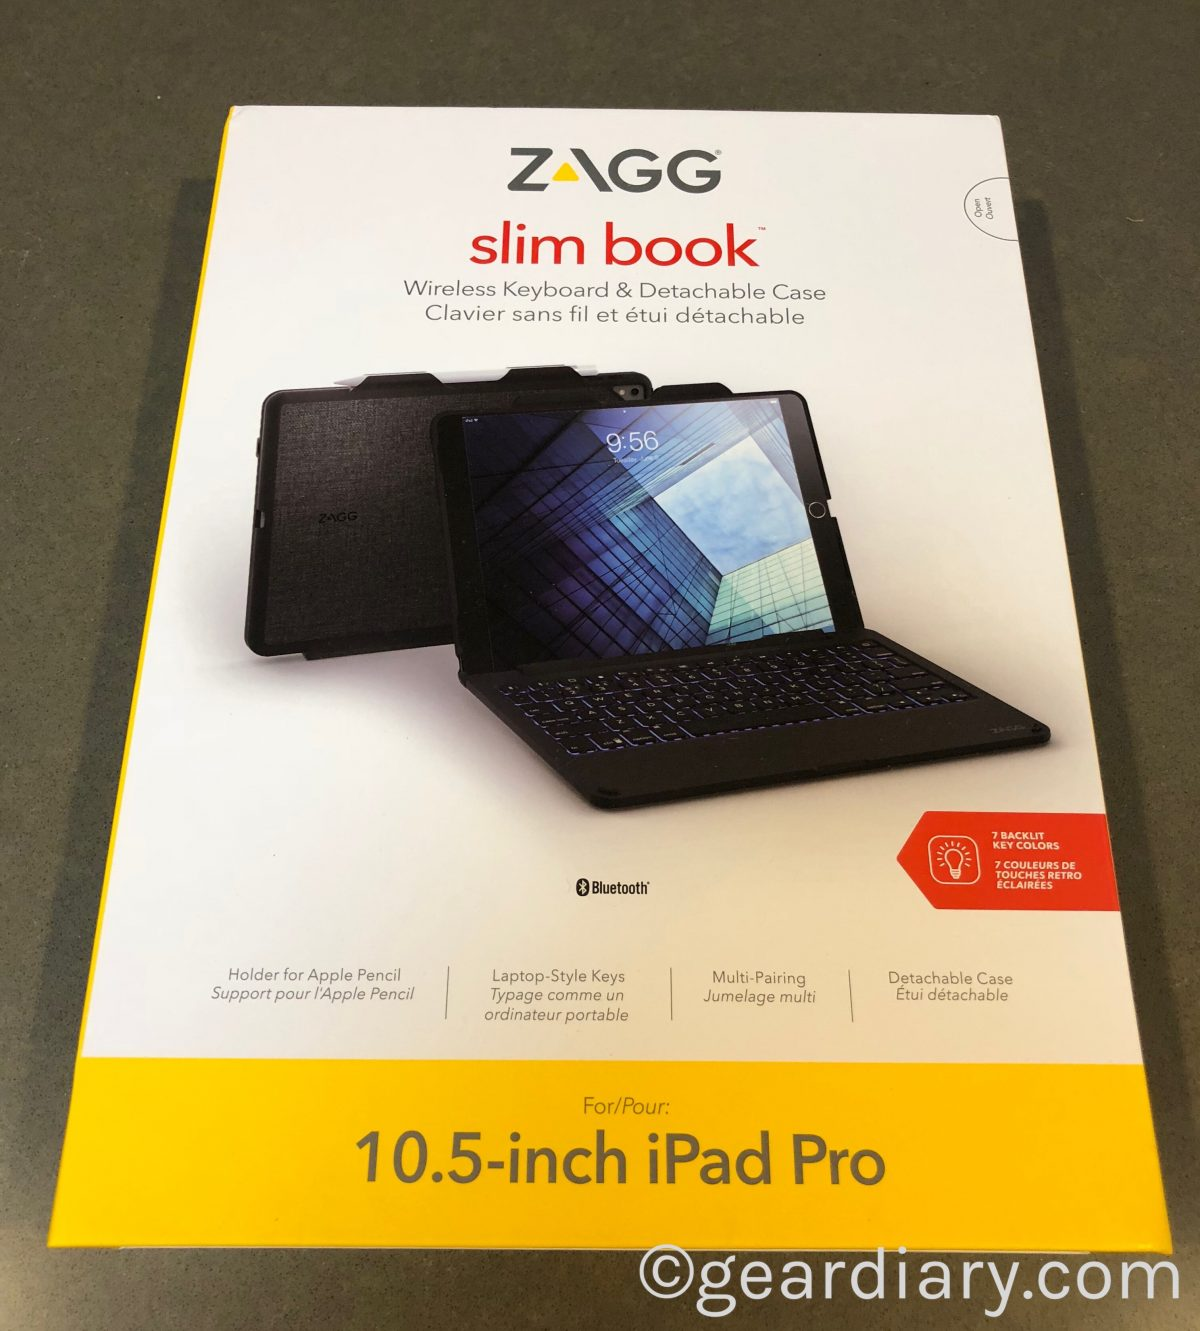 Be More Productive With the ZAGG Slim Book for the Apple 10.5